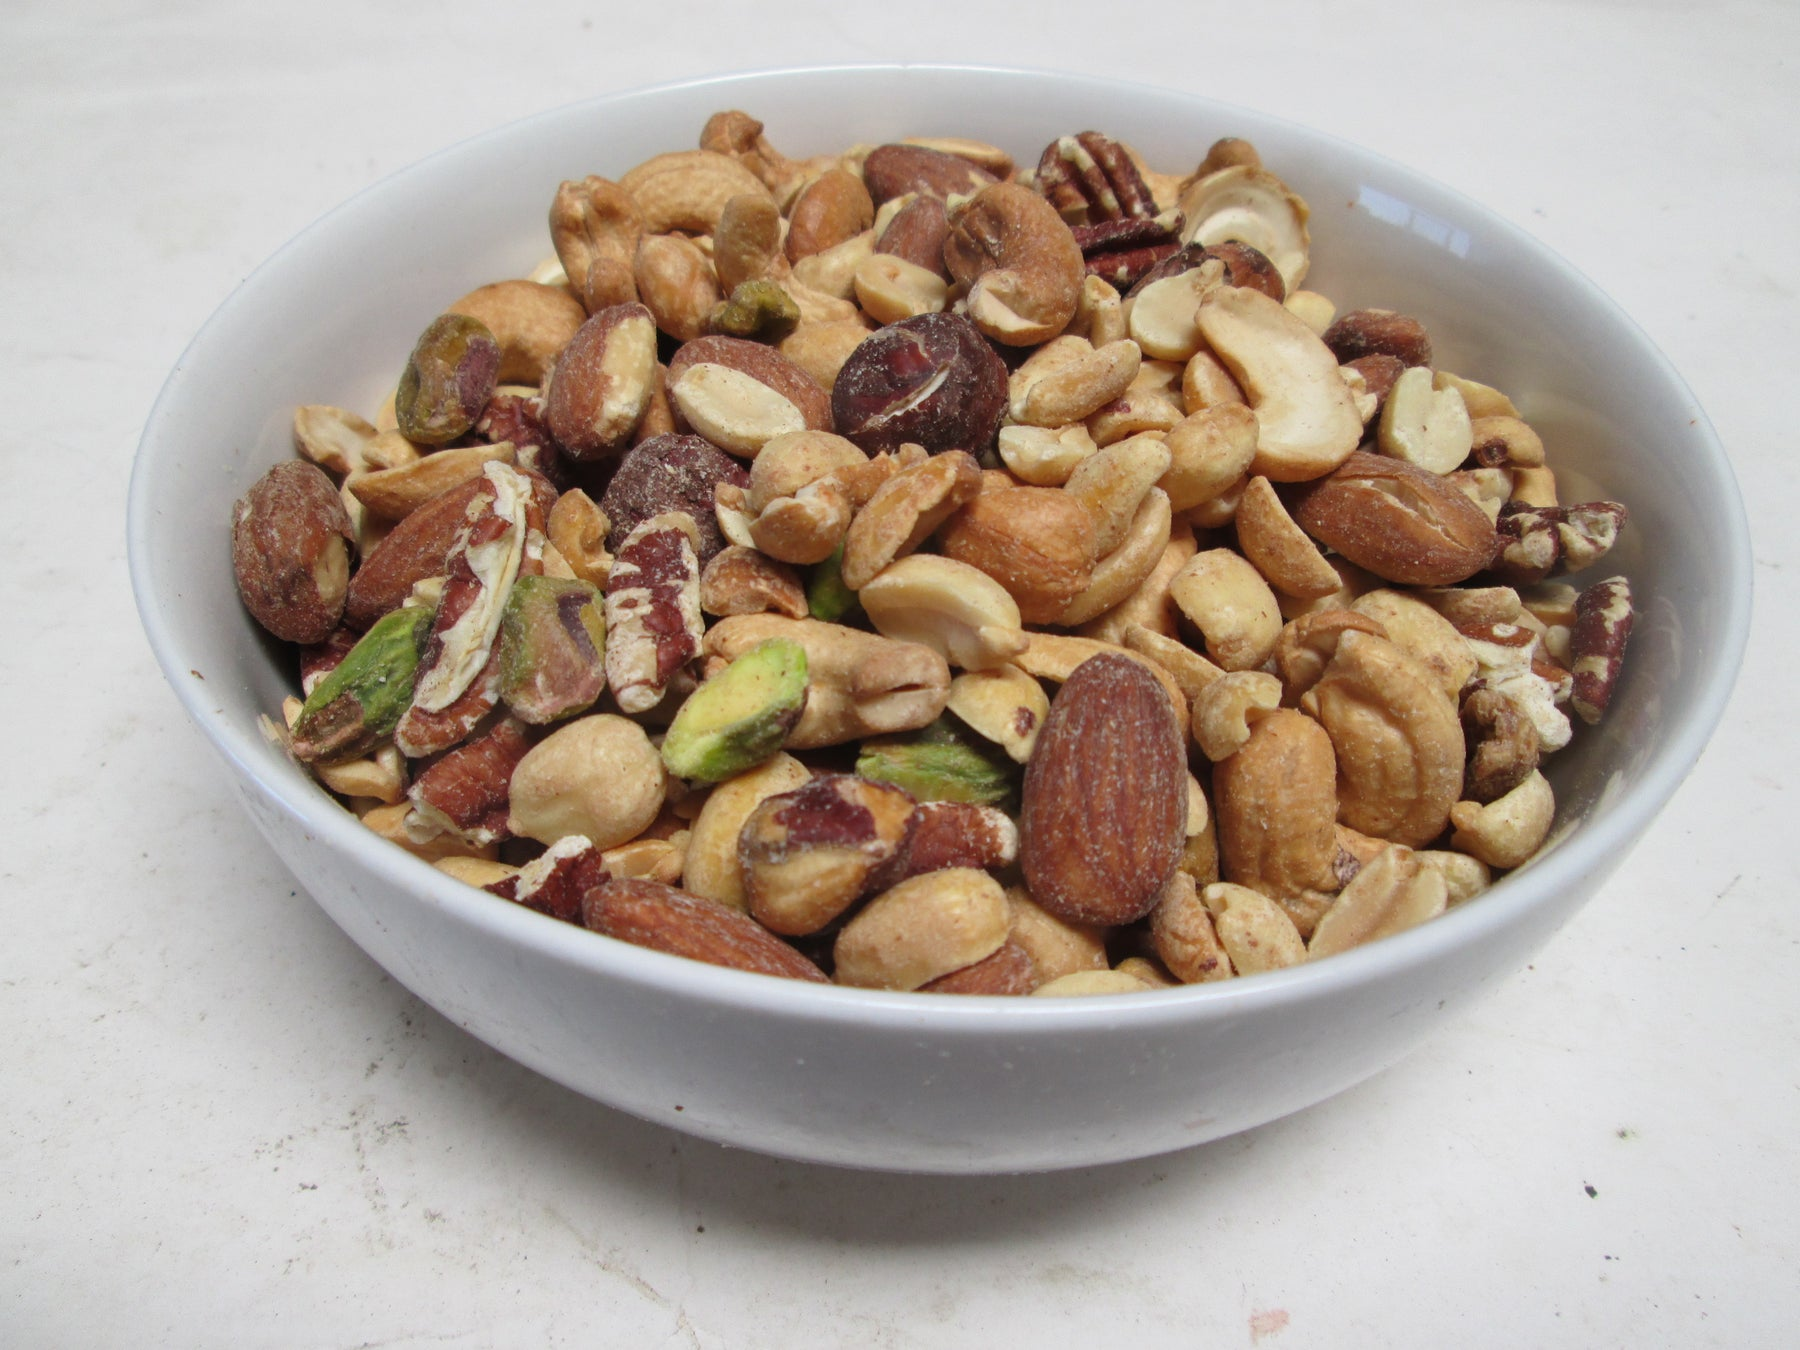 Deluxe Mixed Nuts- Roasted & Salted (No Peanuts), 25 lbs/bag